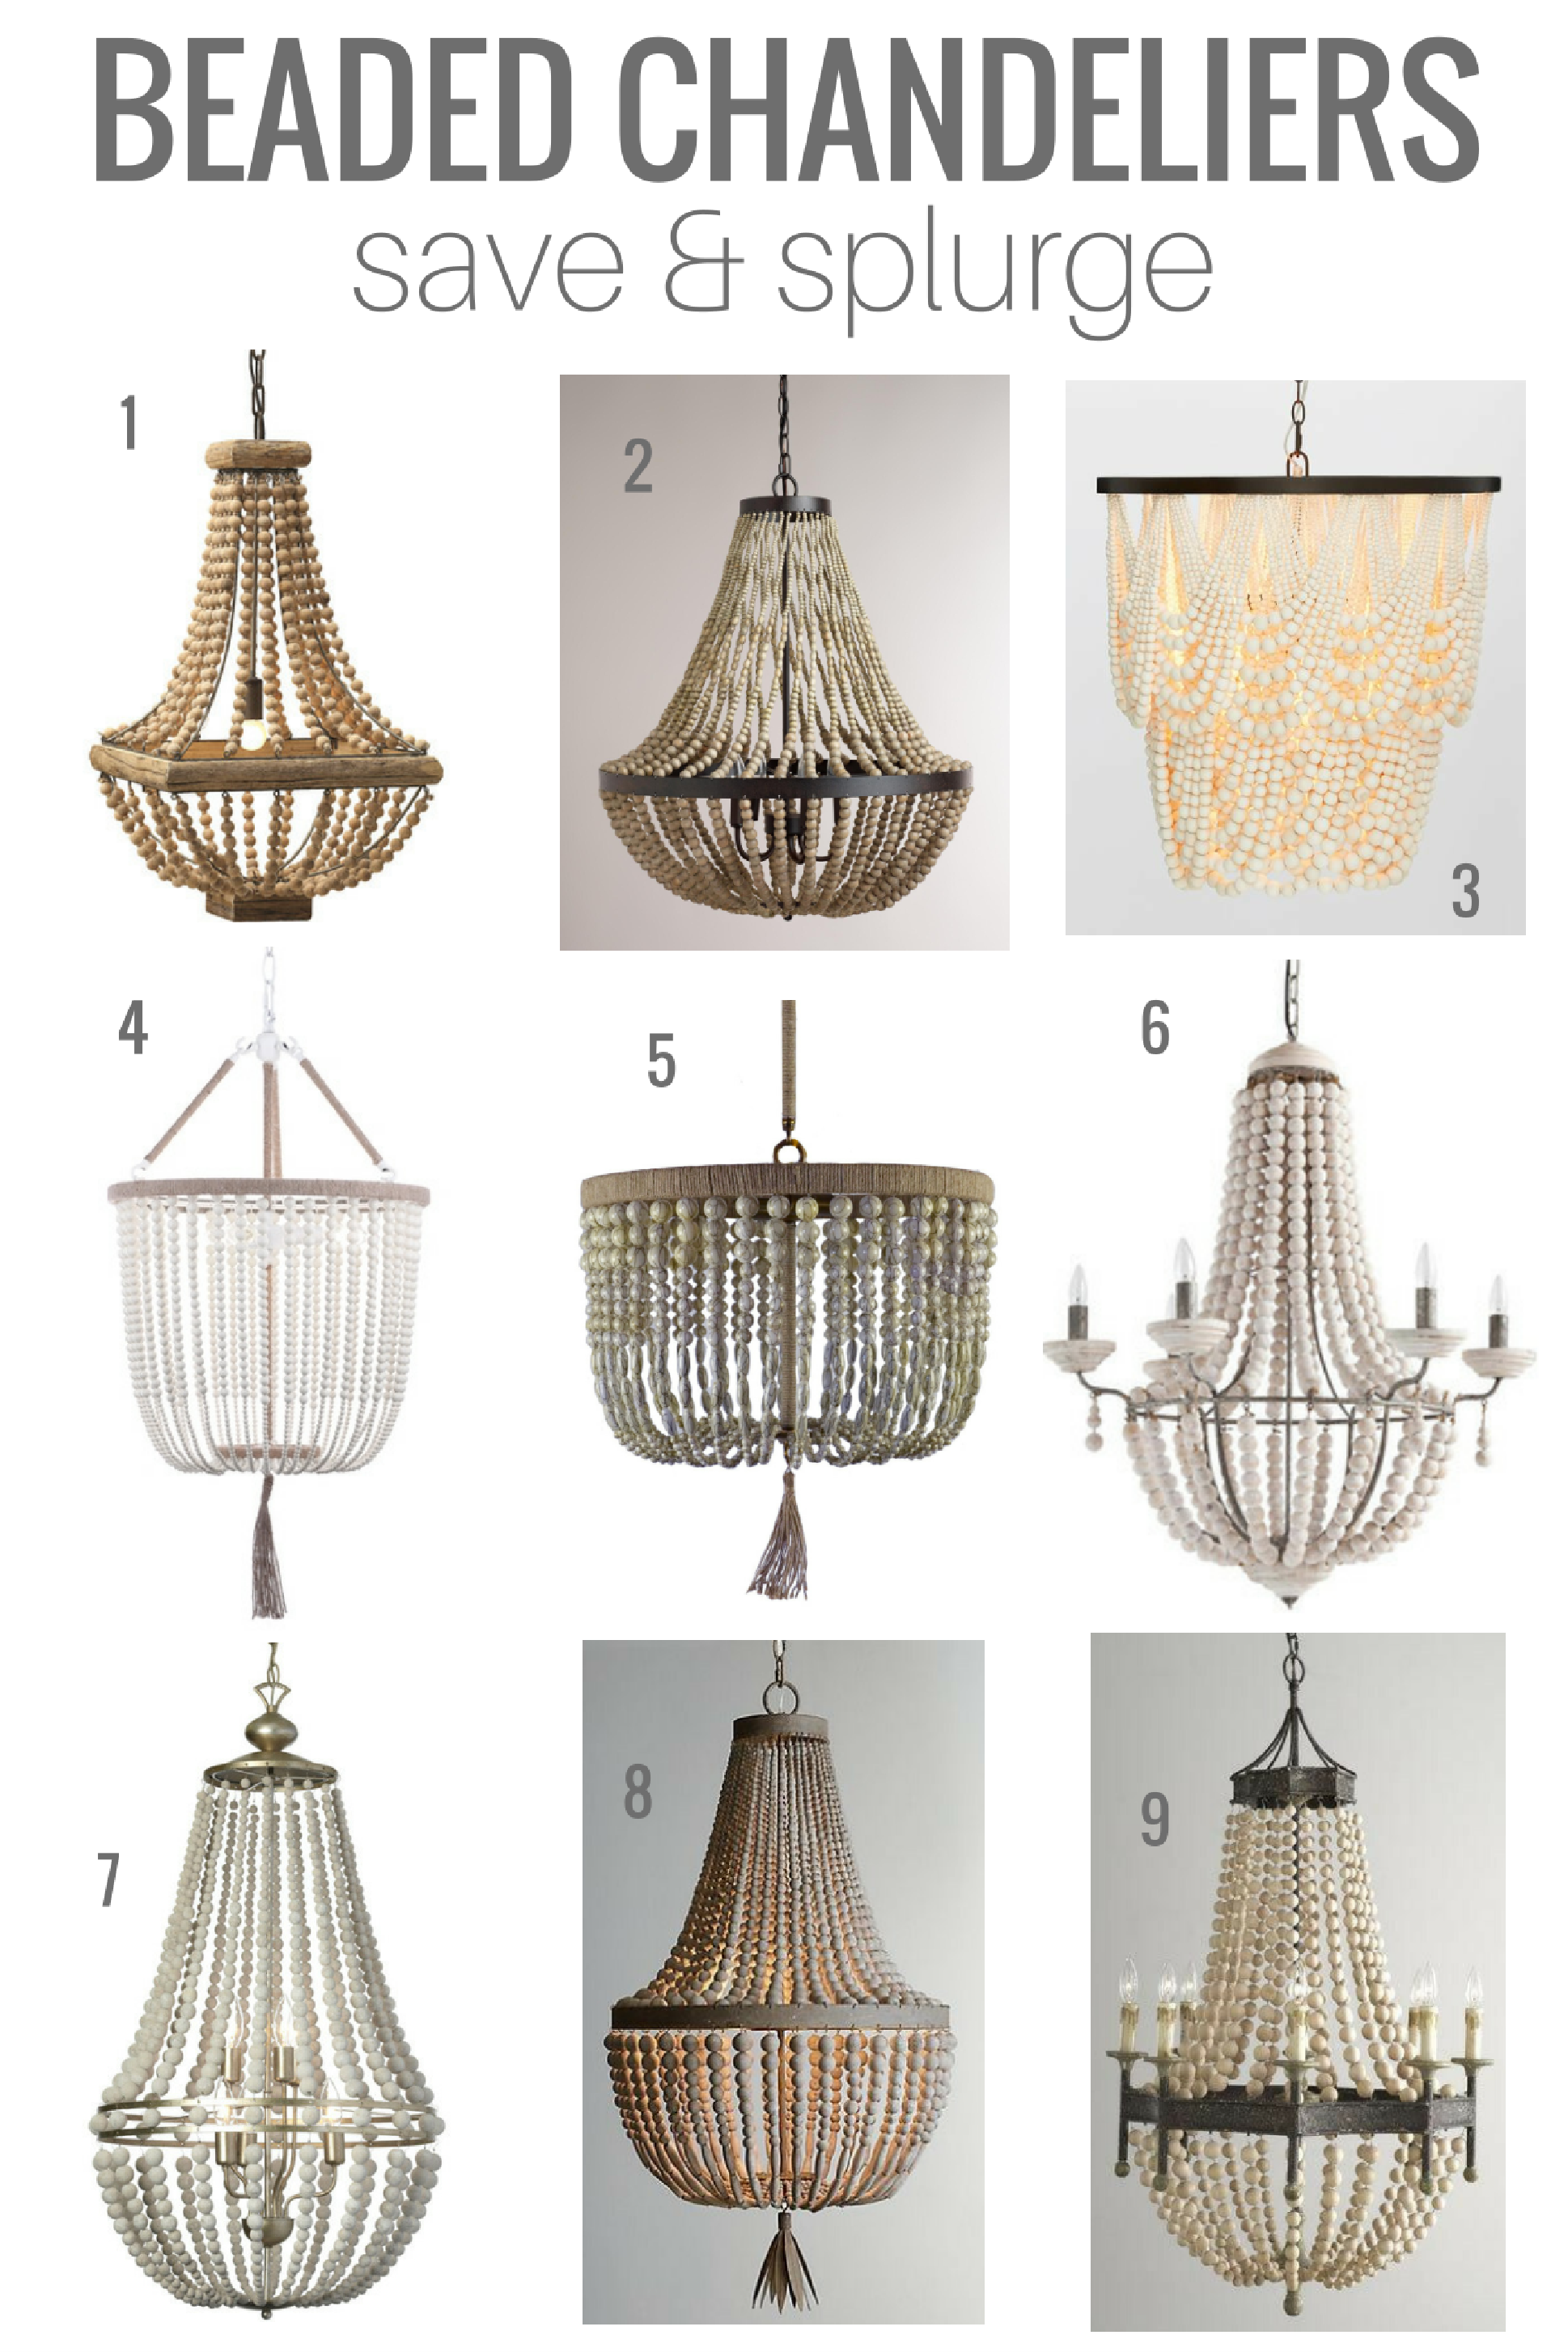 Beaded Chandeliers U0026 Invaluable Lighting Lessons   Satori Design For Living Gallery